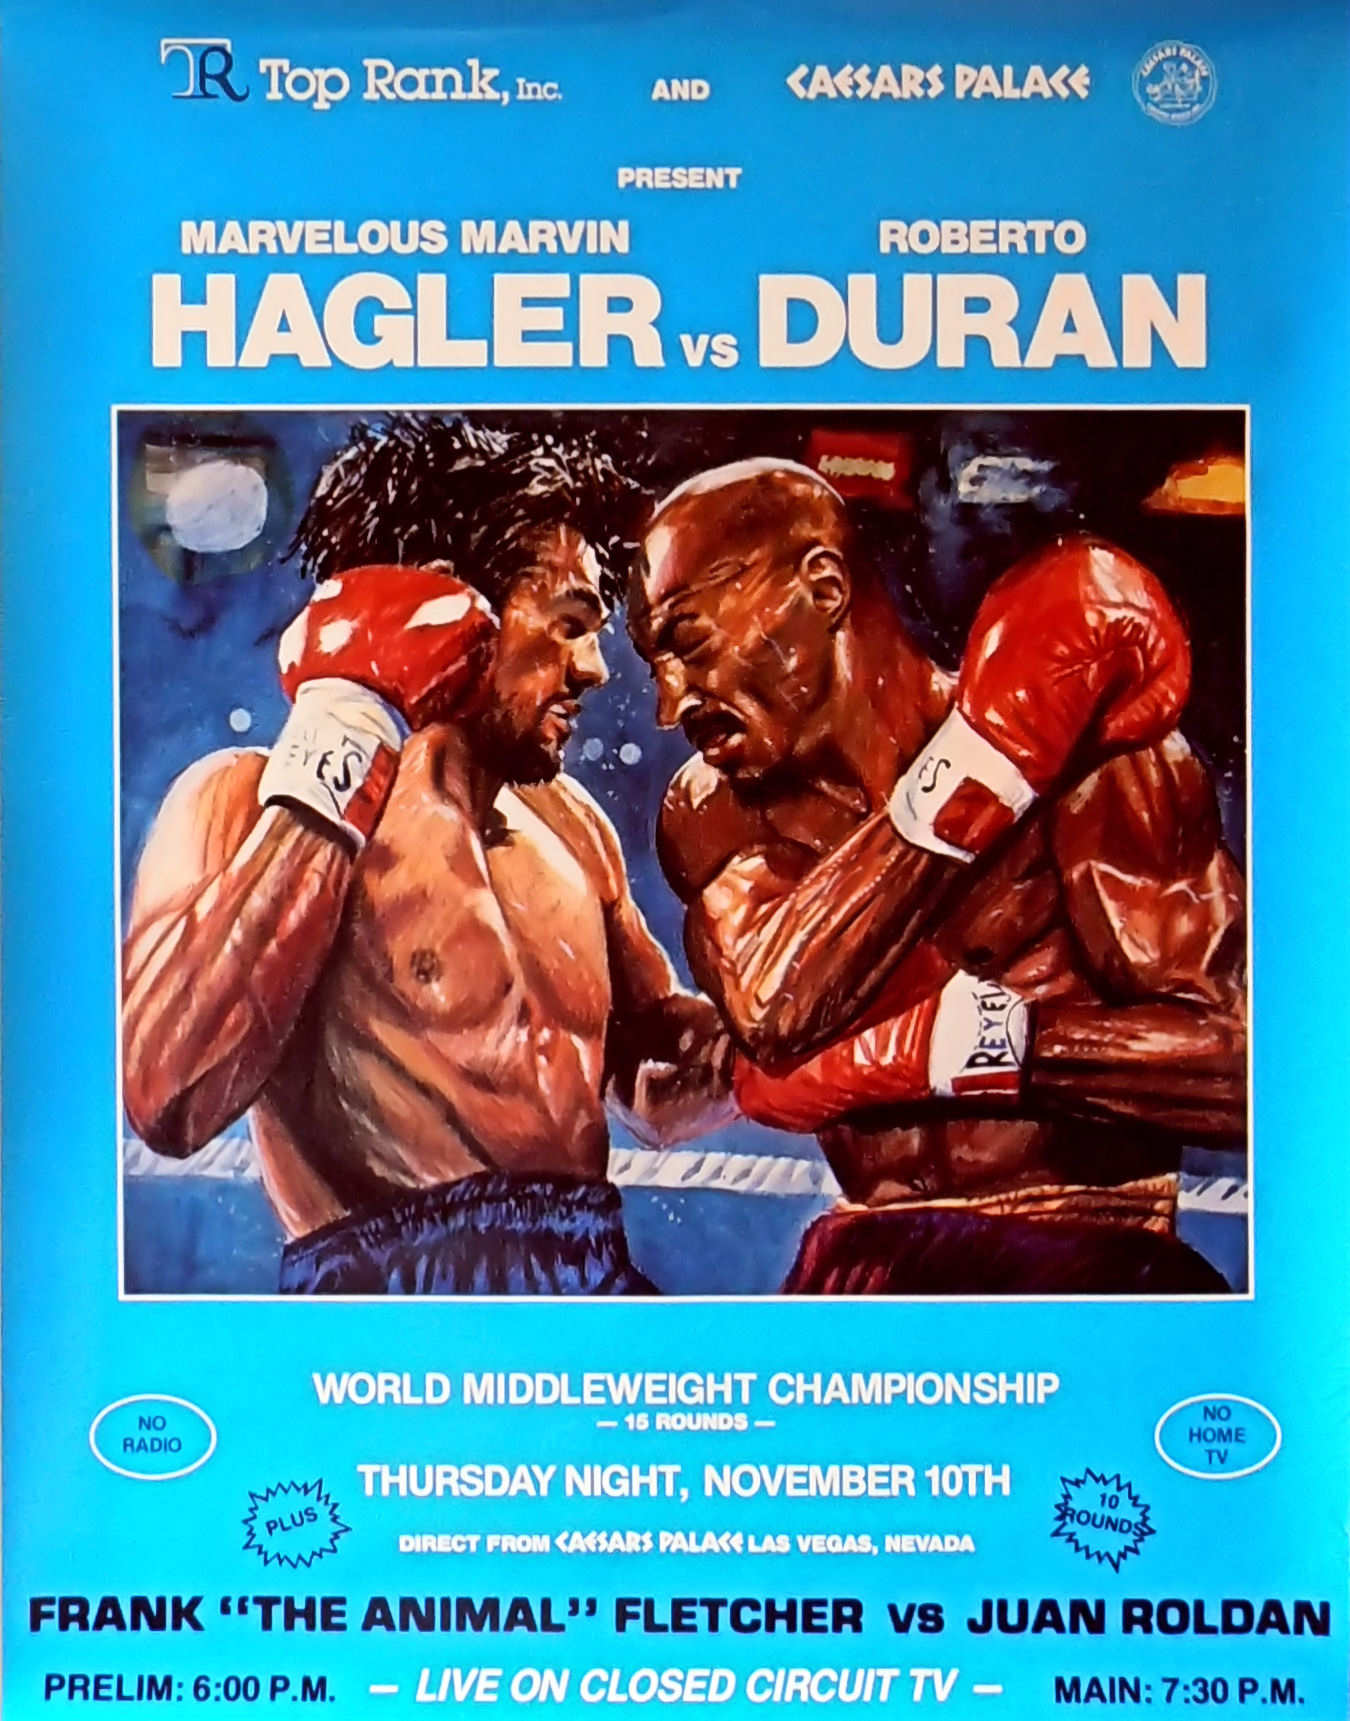 DURAN-HAGLER FIGHT PROGRAM